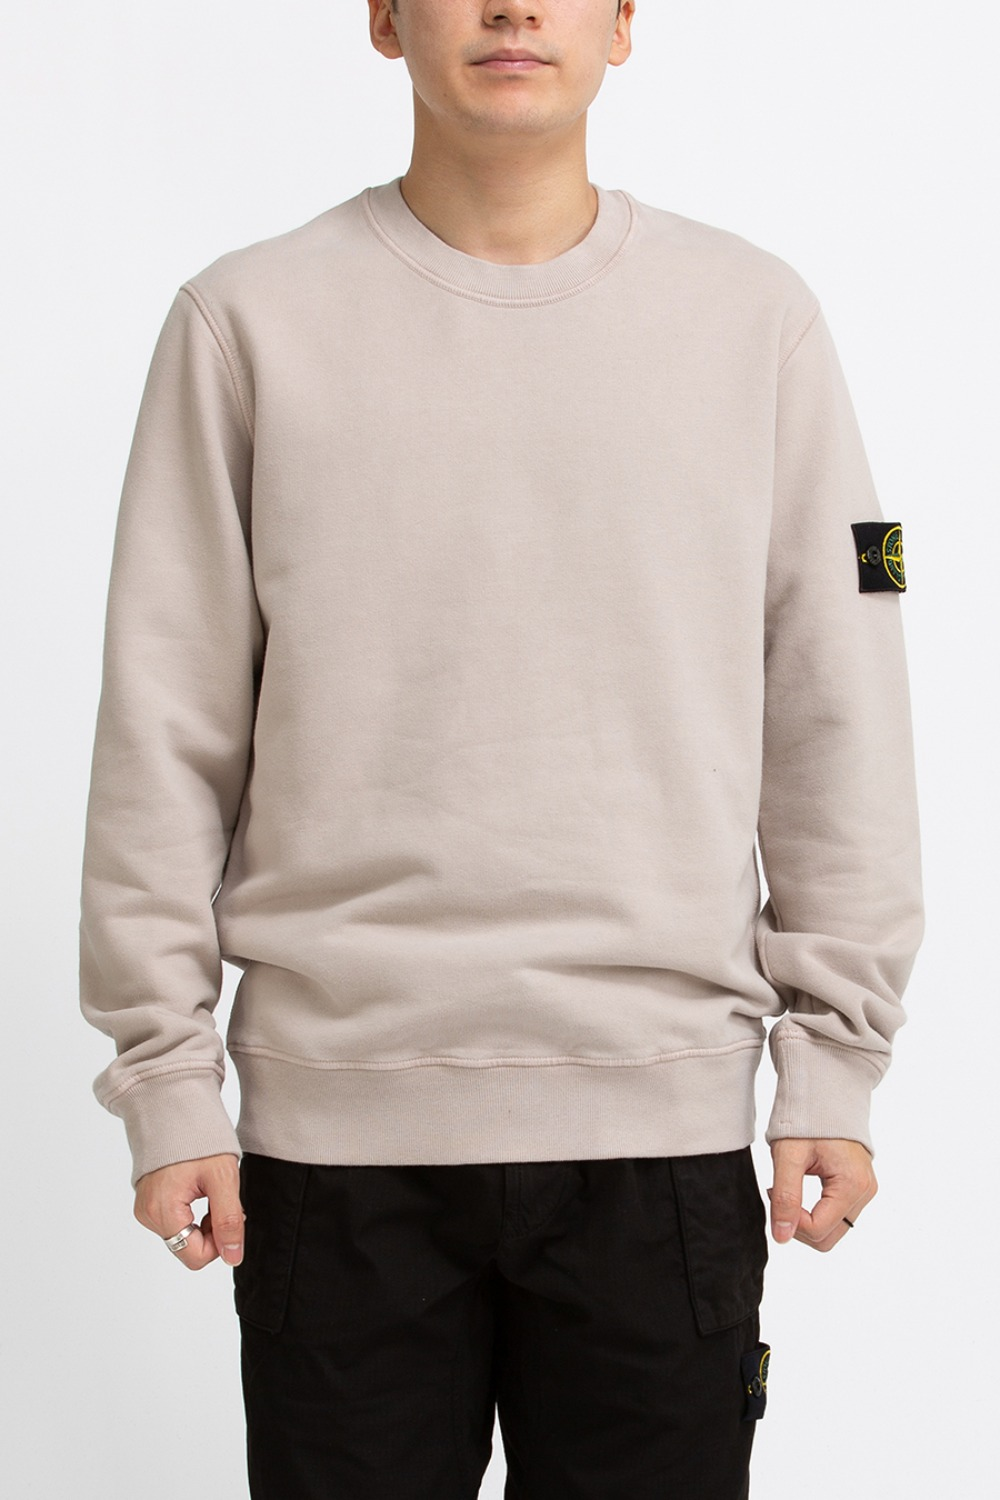 BRUSHED COTTON FLEECE GARMENT DYED SWEATSHIRT BEIGE